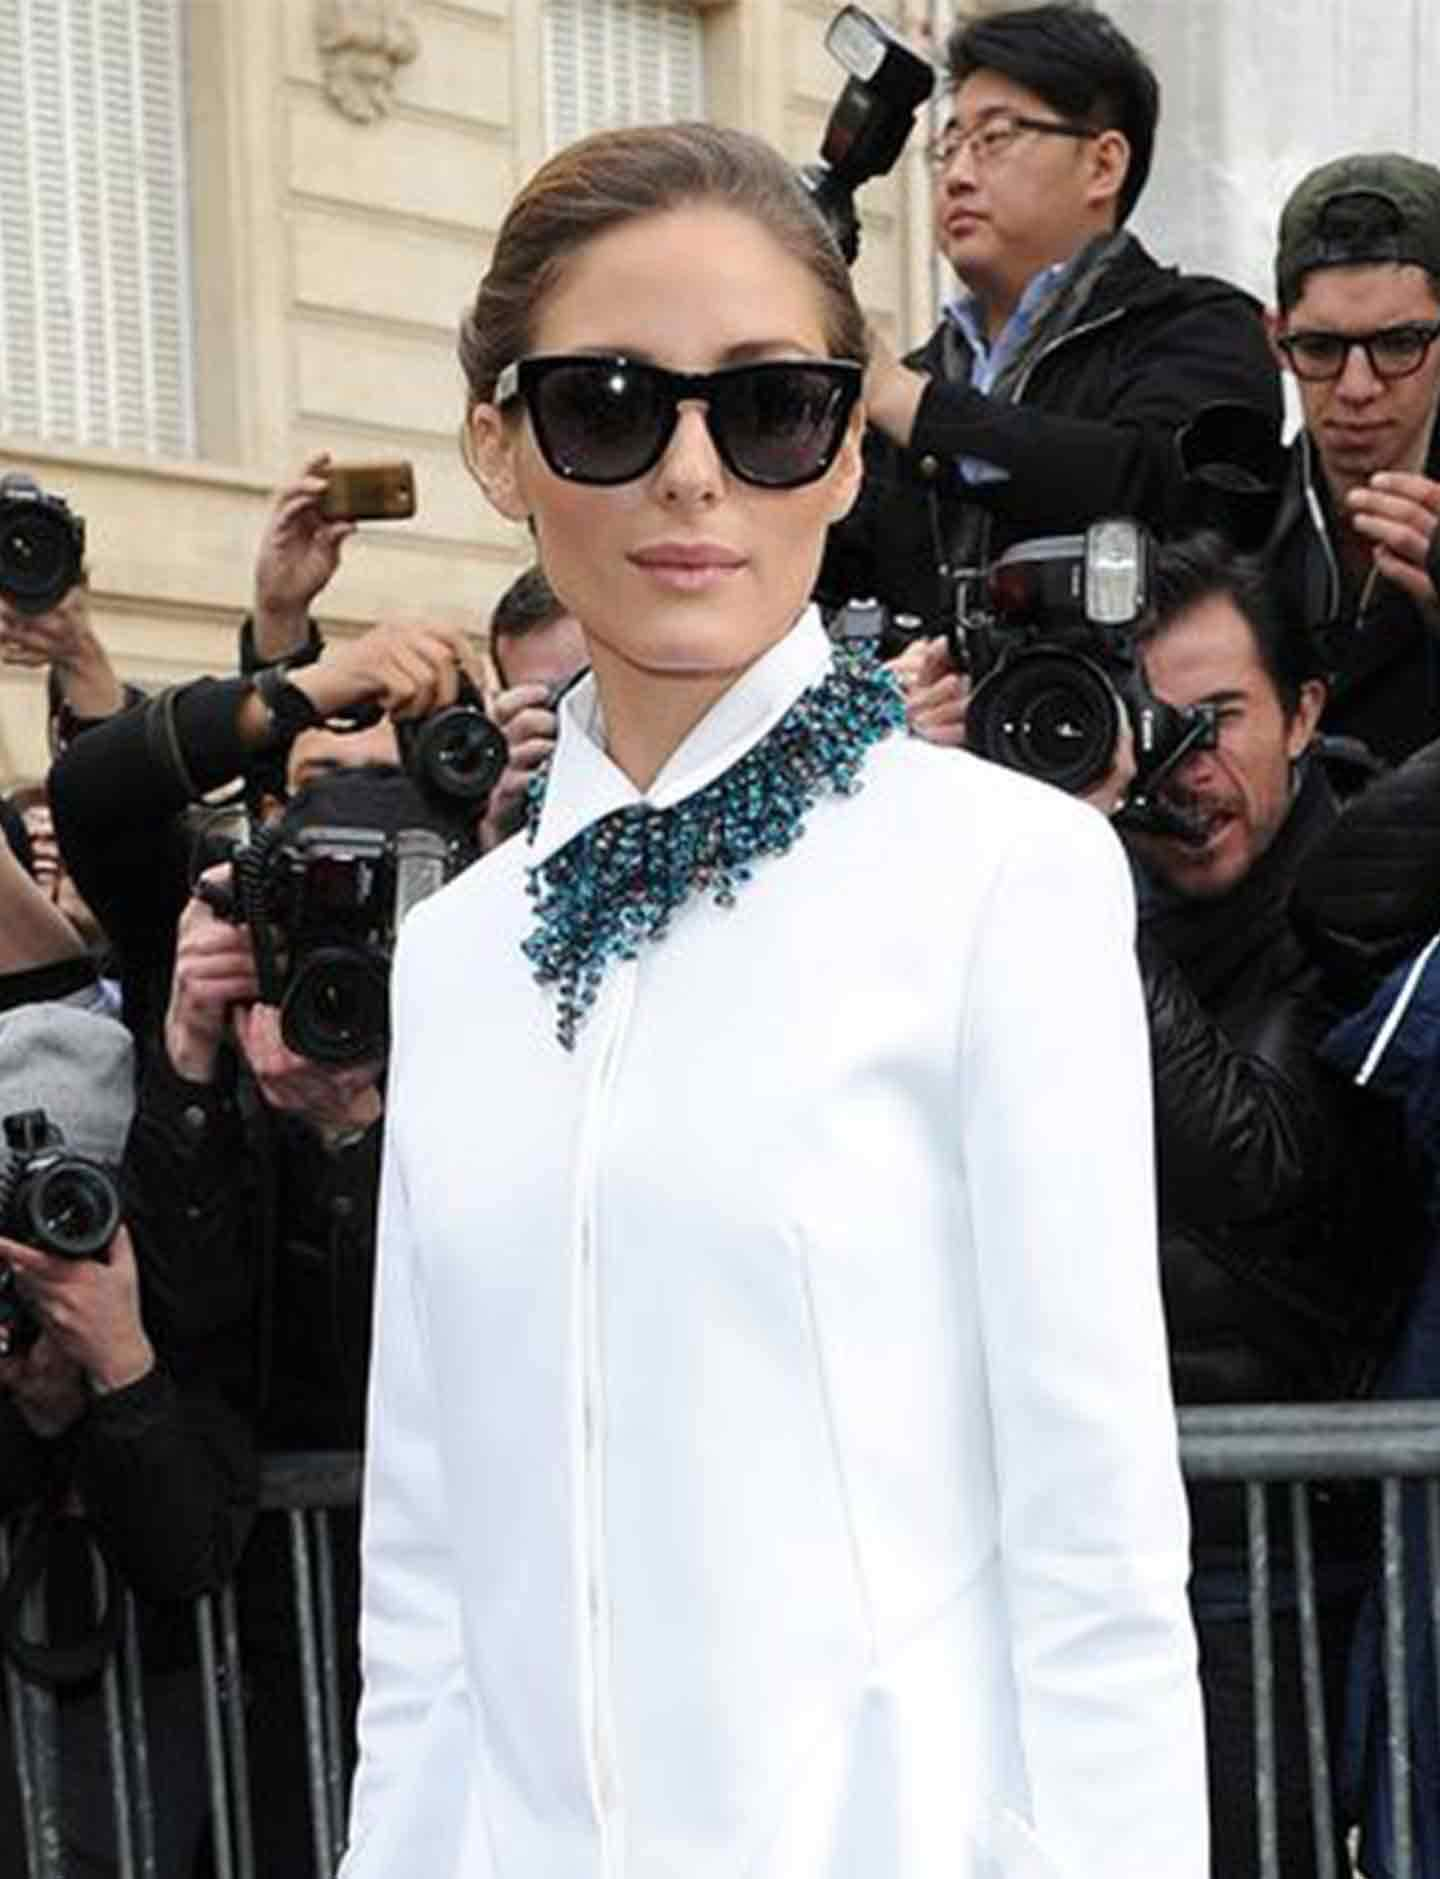 olivia palermo wearing white shirt dress and statement necklace standing in front of barriers and photographers